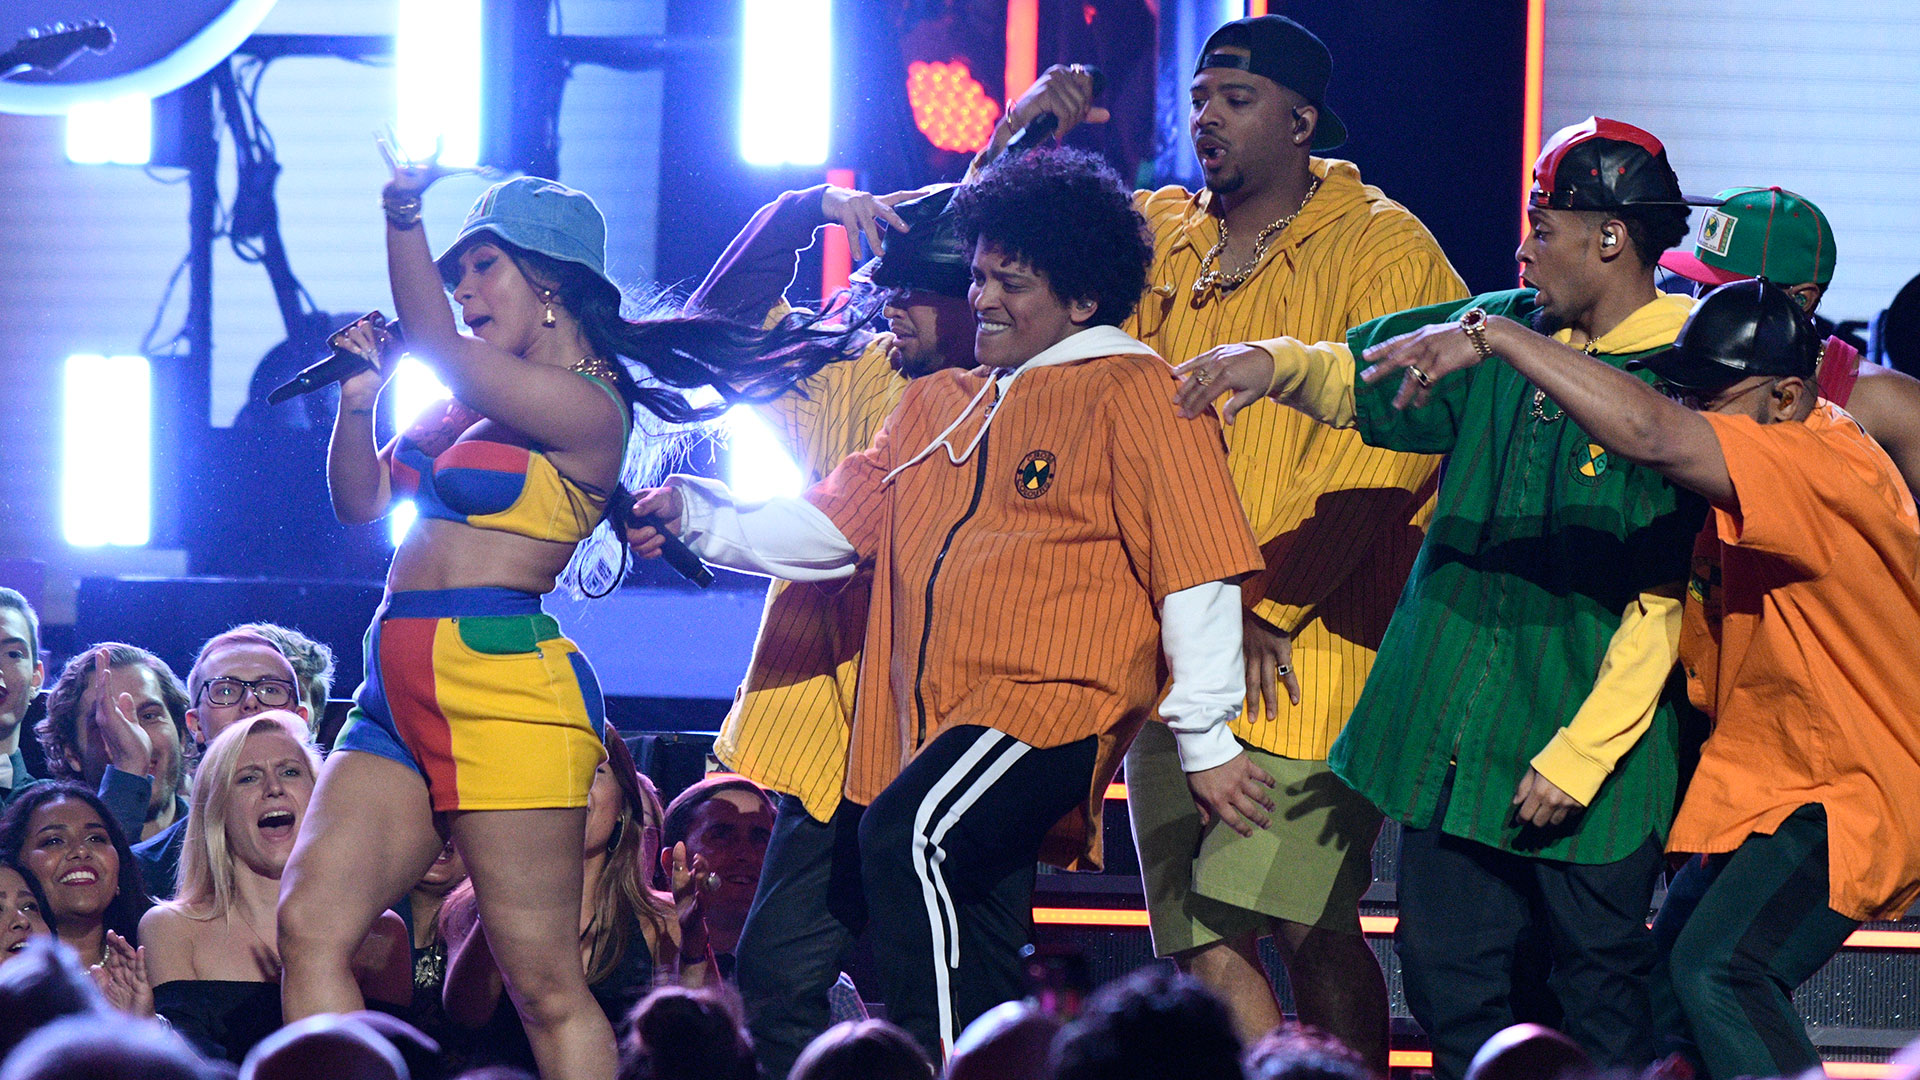 Bruno Mars and Cardi B pull out all the stops when they perform a fun and funky duet of